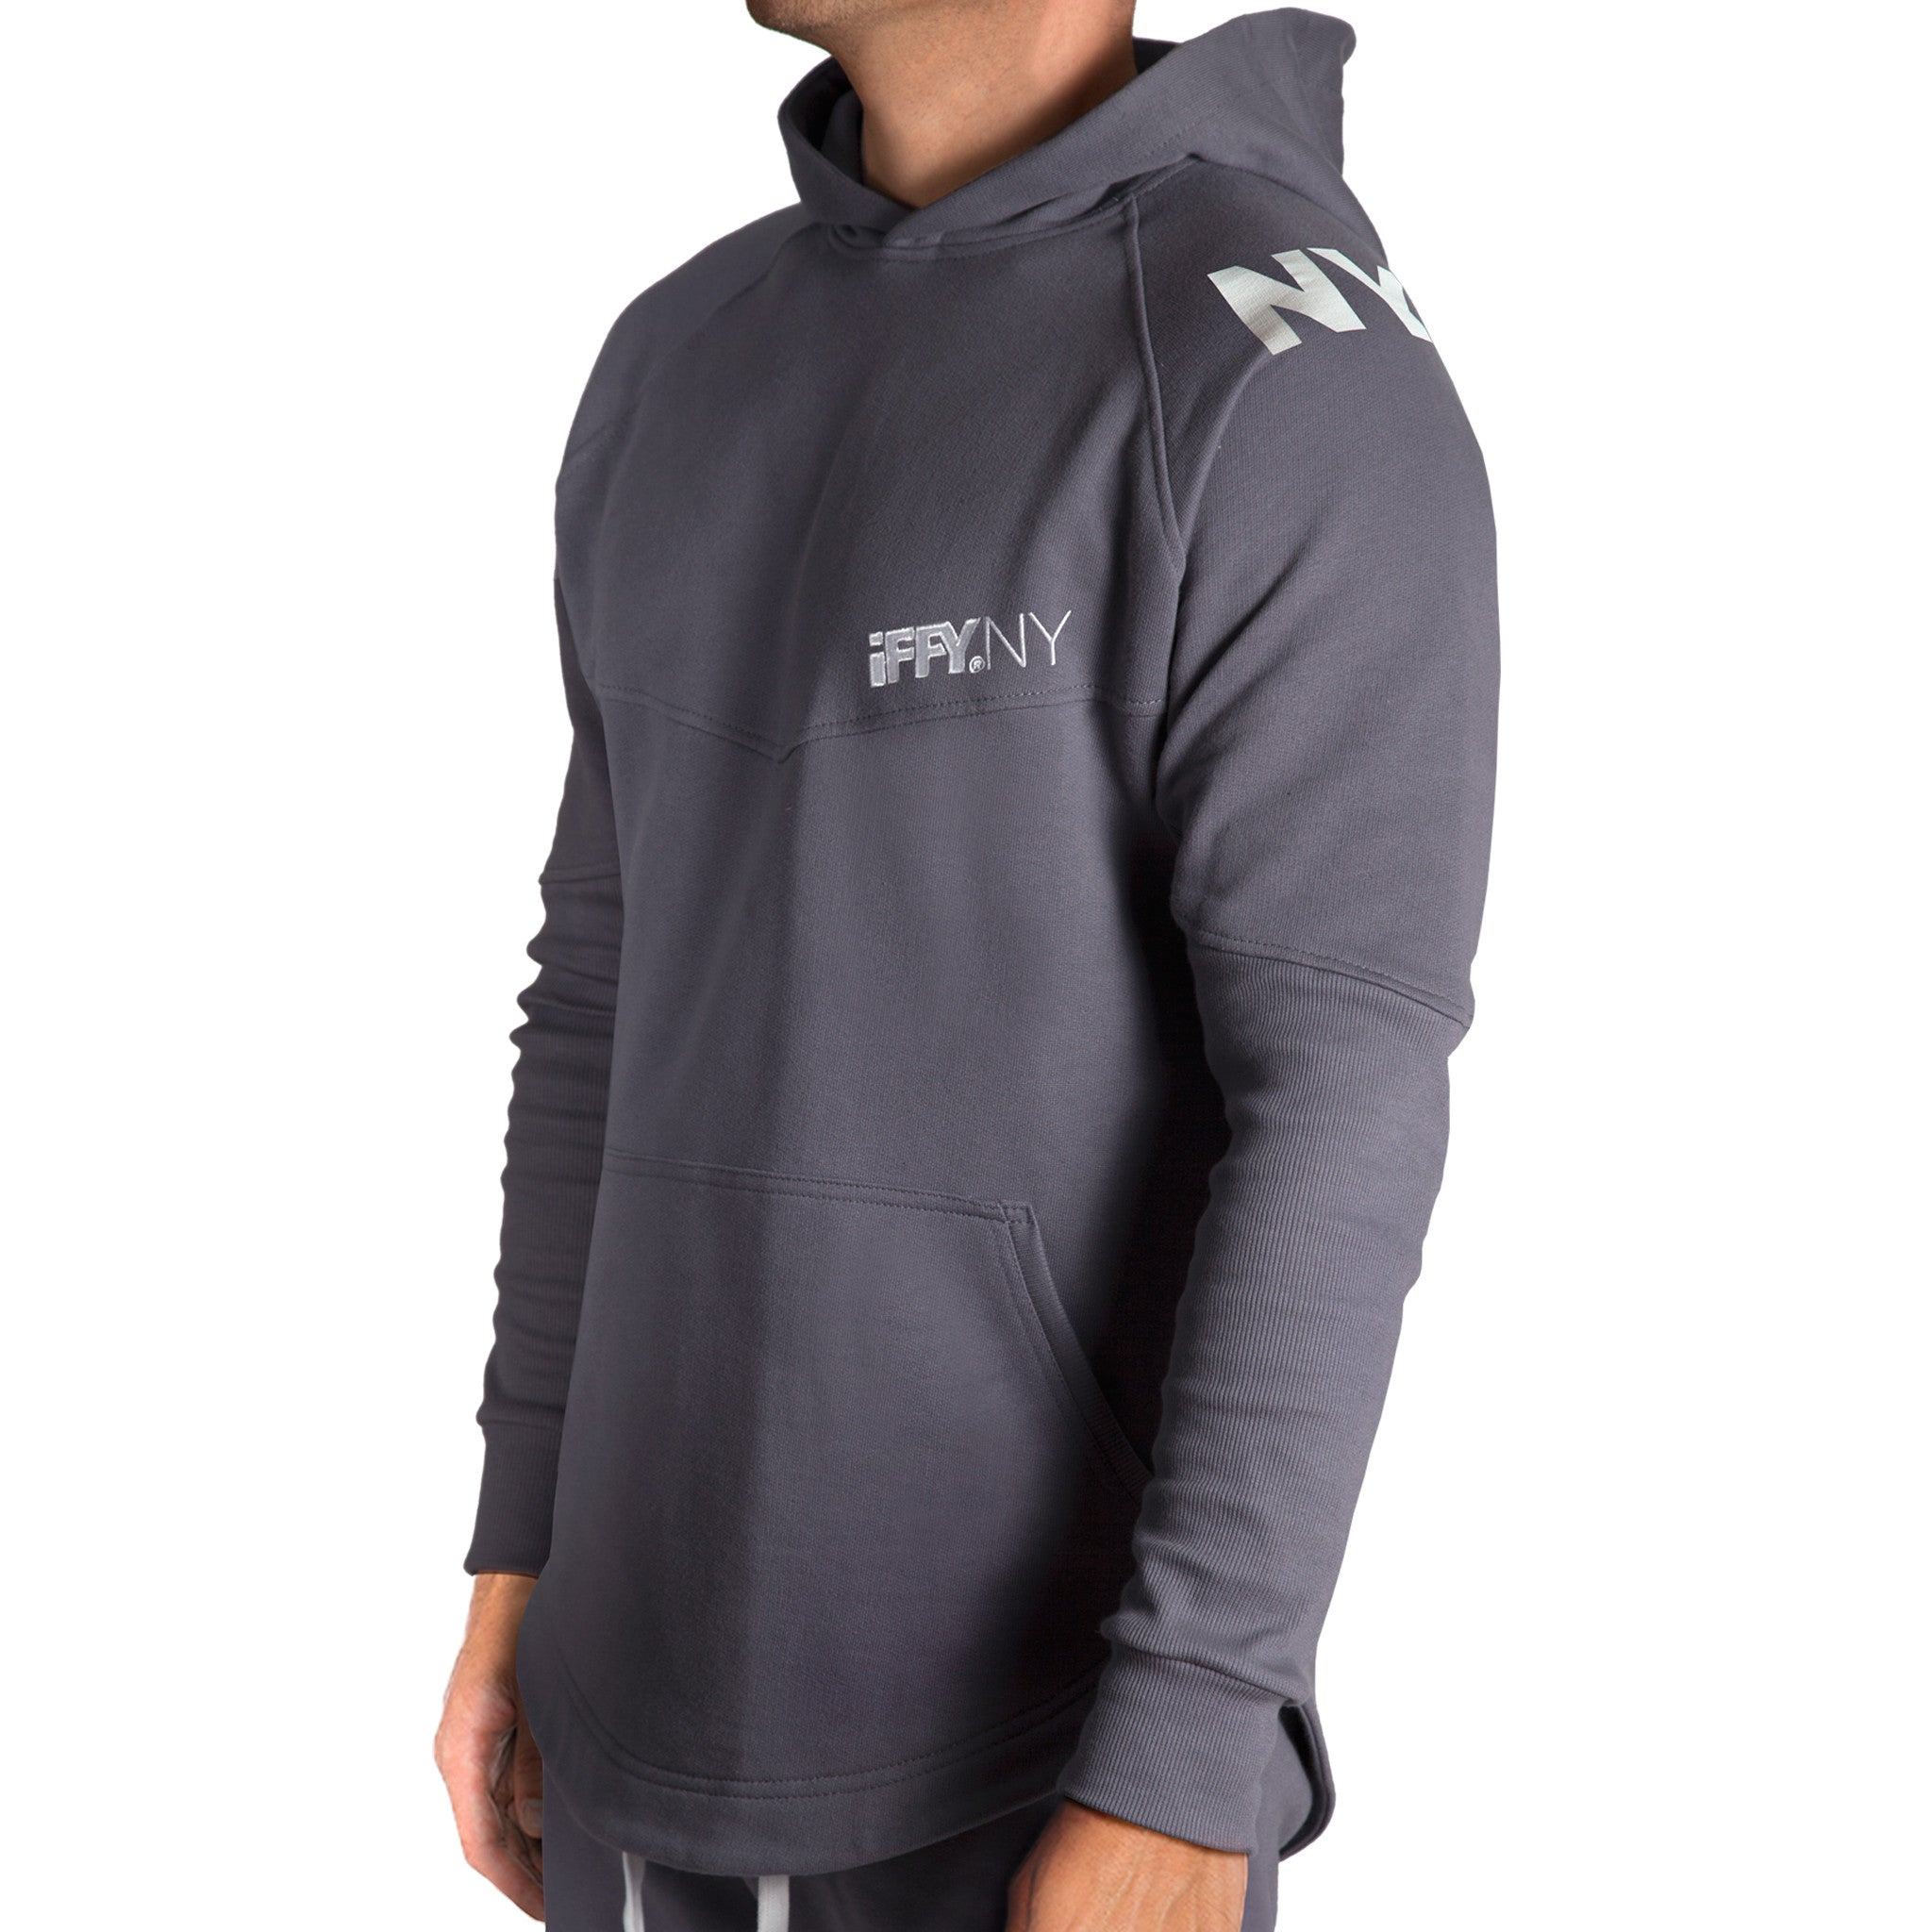 IFFY NY Hunter suit in sharkskin grey (Hoodie)